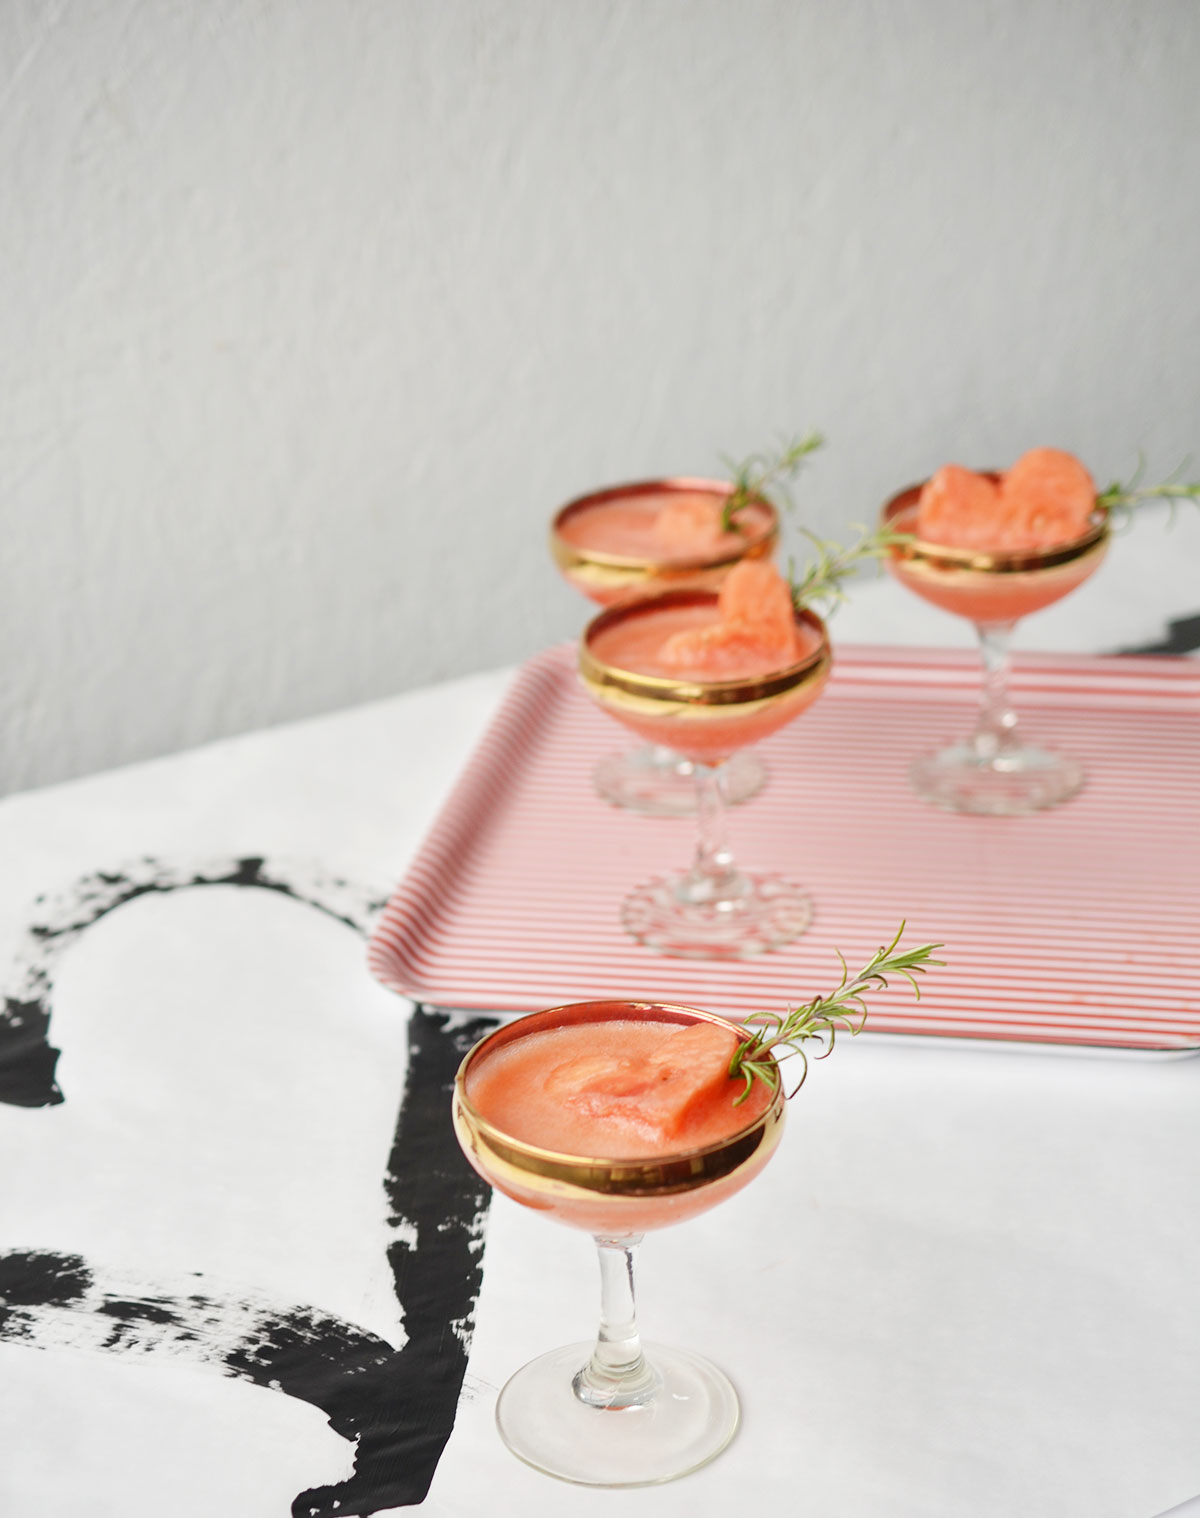 Ali Hedin | Watermelon Fizz for Galentine's Day